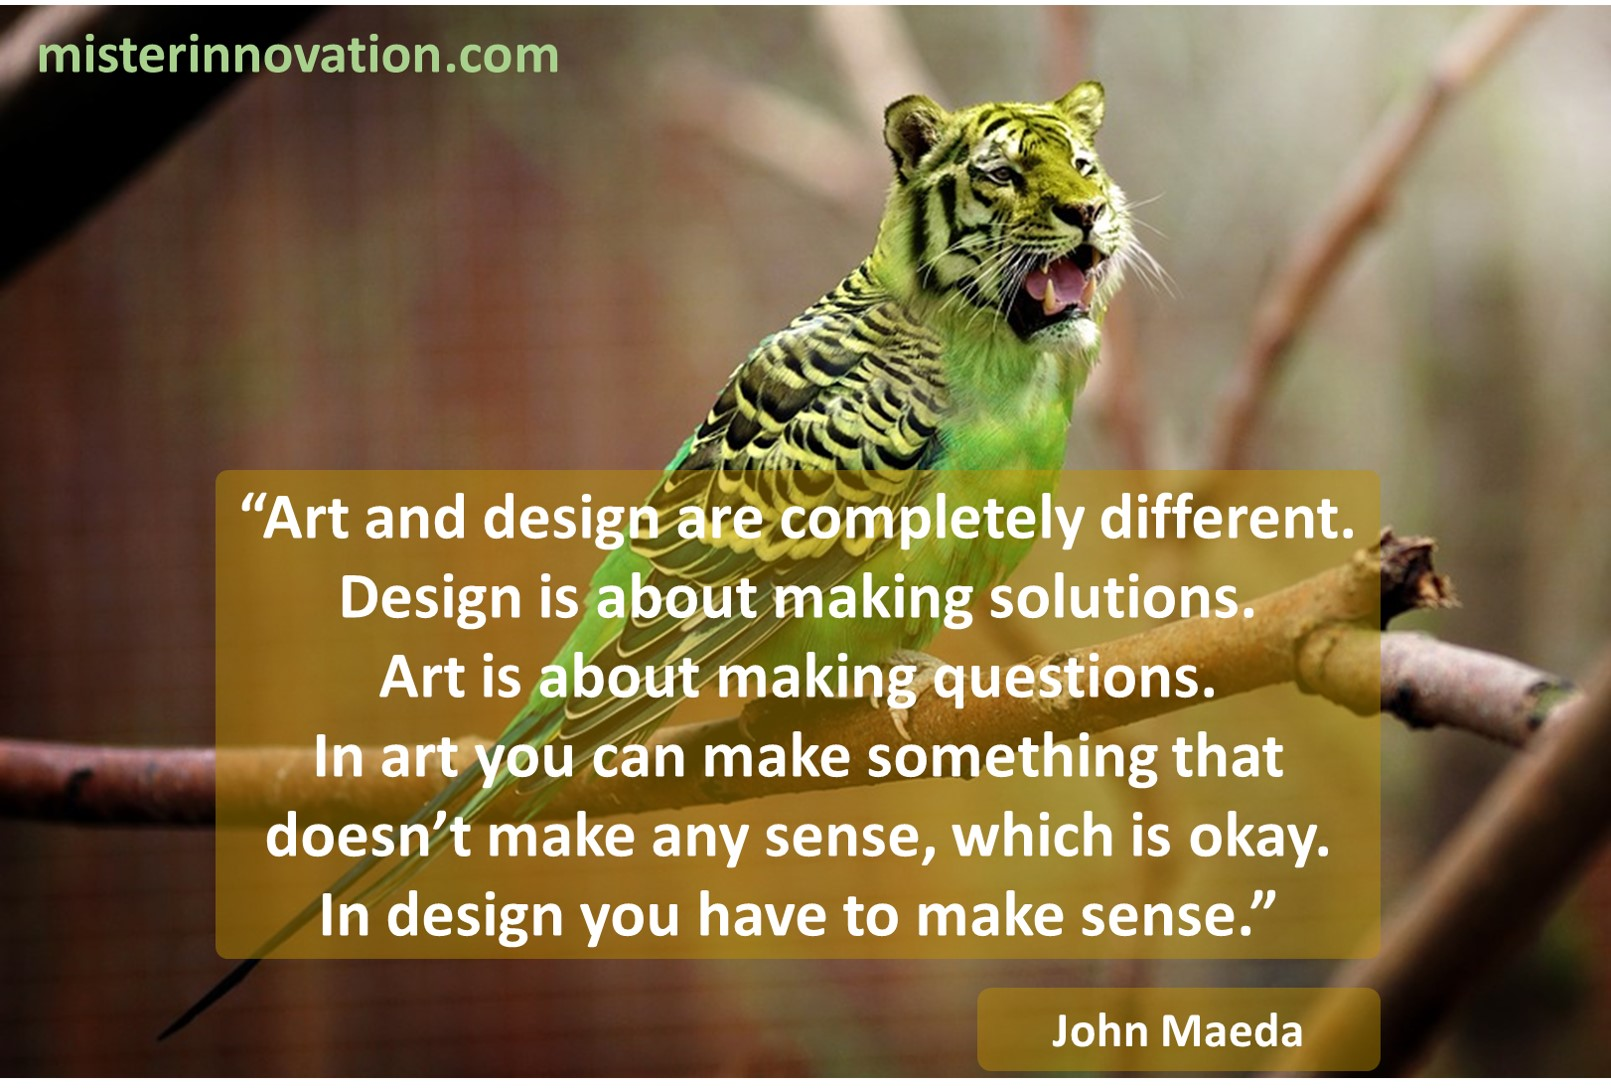 John Maeda Quote on Art and Design